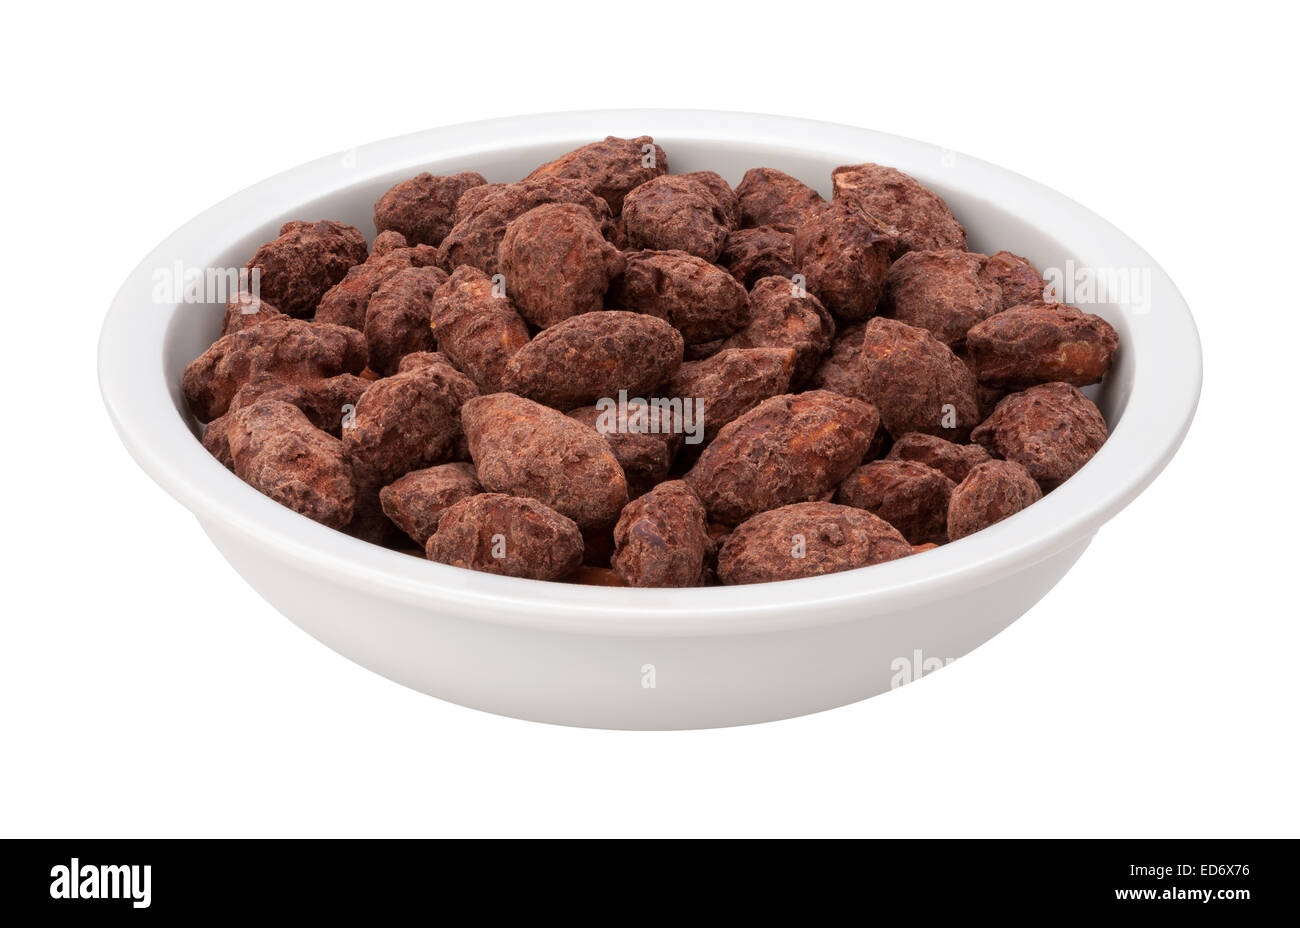 Chocolate Coated Almonds in a bowl - Stock Image